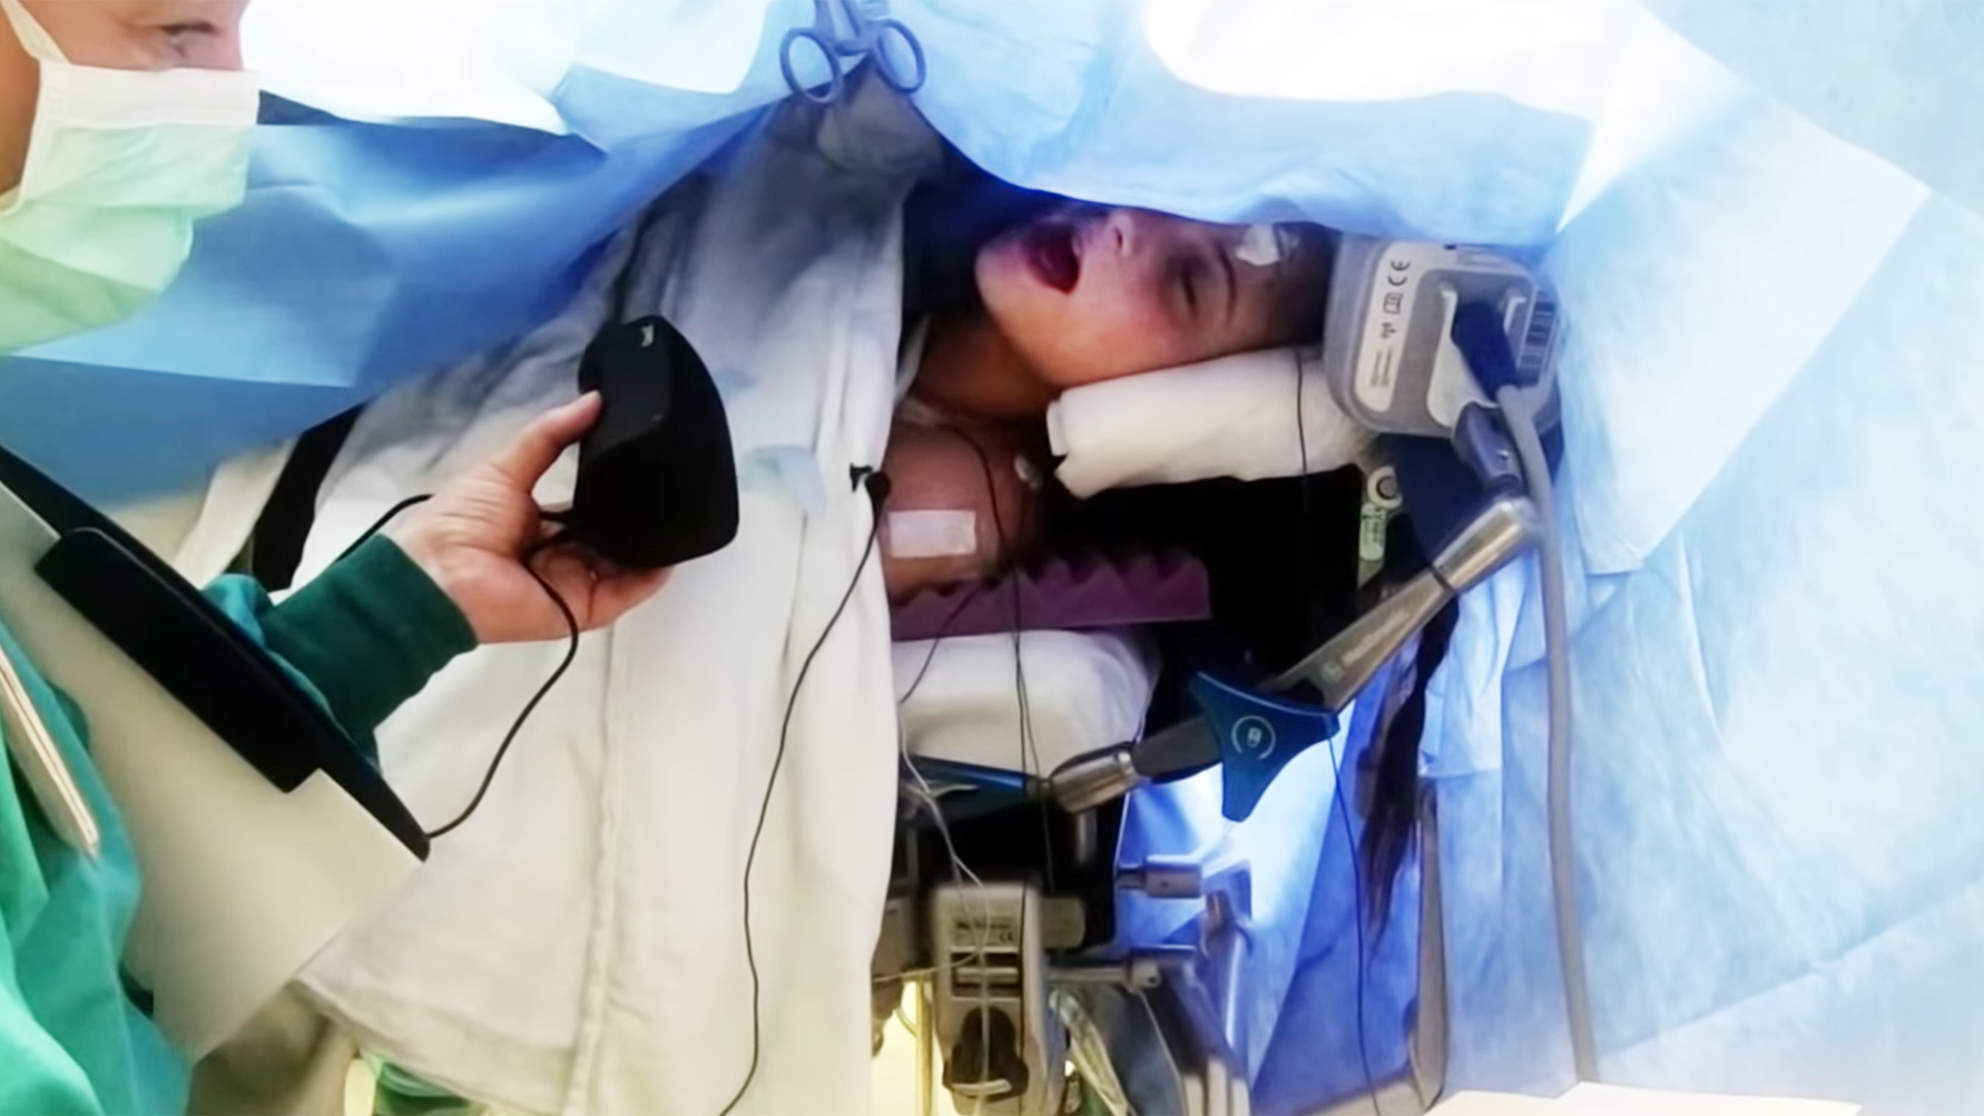 Teen Sings During Brain Surgery to Save Her Musical Abilities